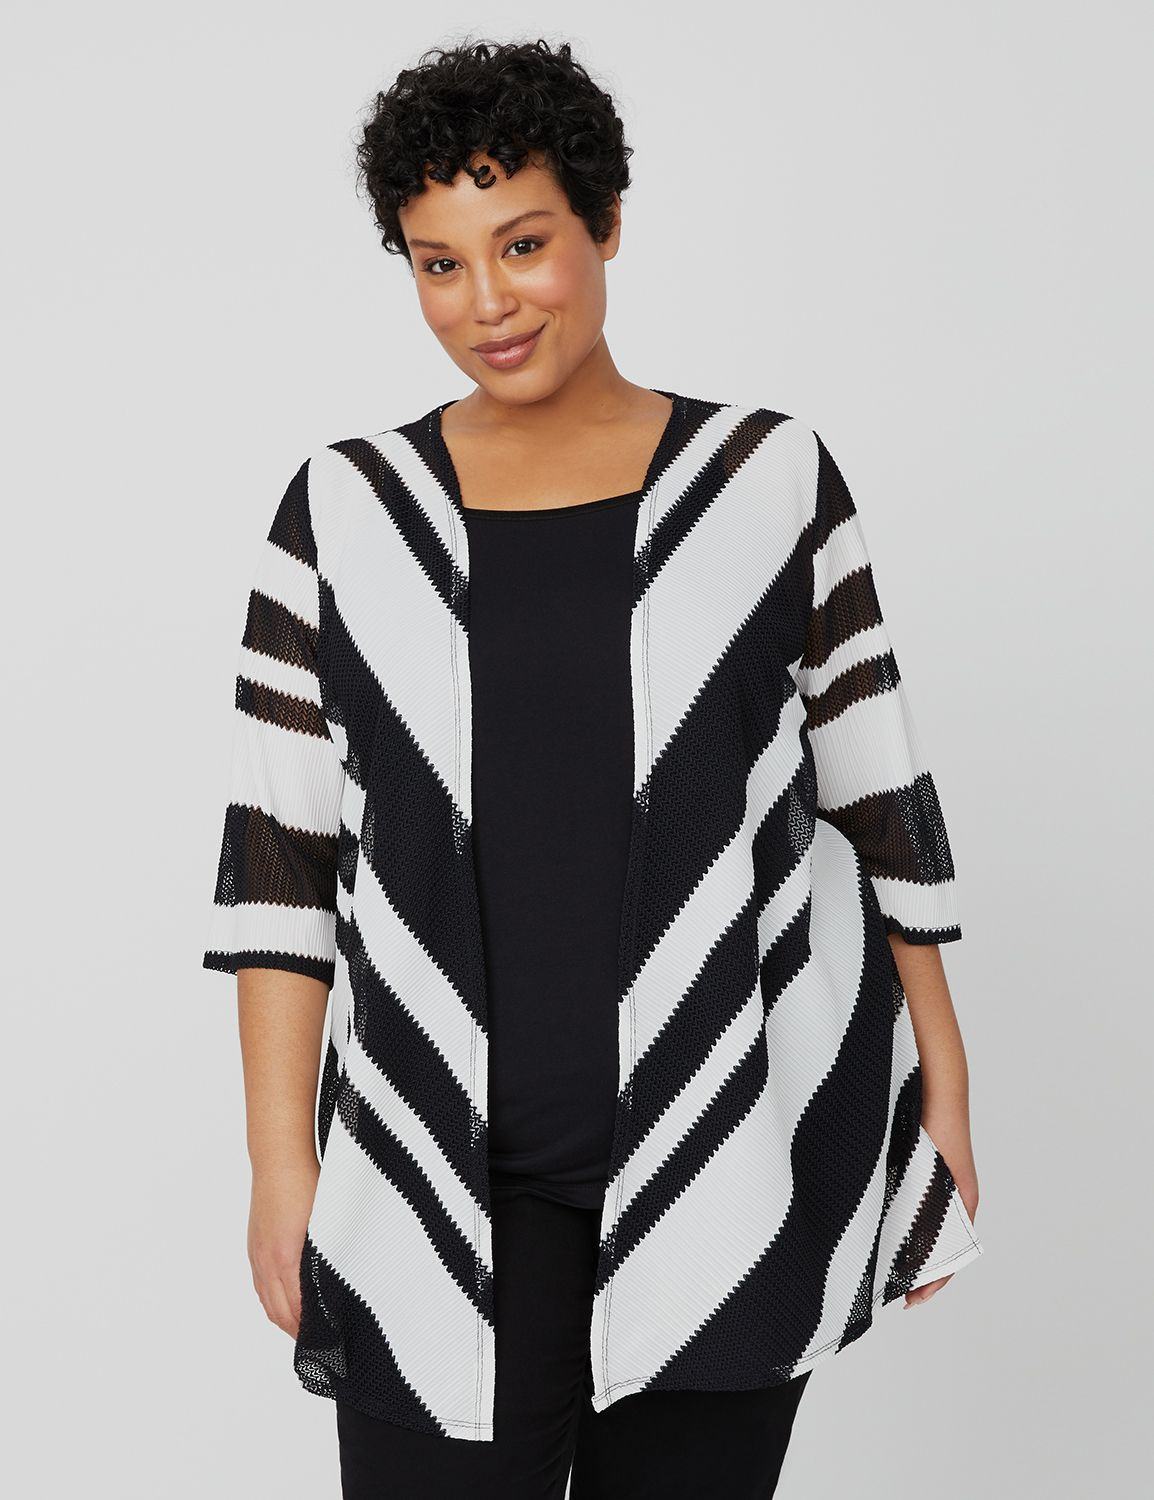 Cascading Herringbone Cardigan 1089908 BLK/WHT HERRINGBONE COLORBL MP-300099910